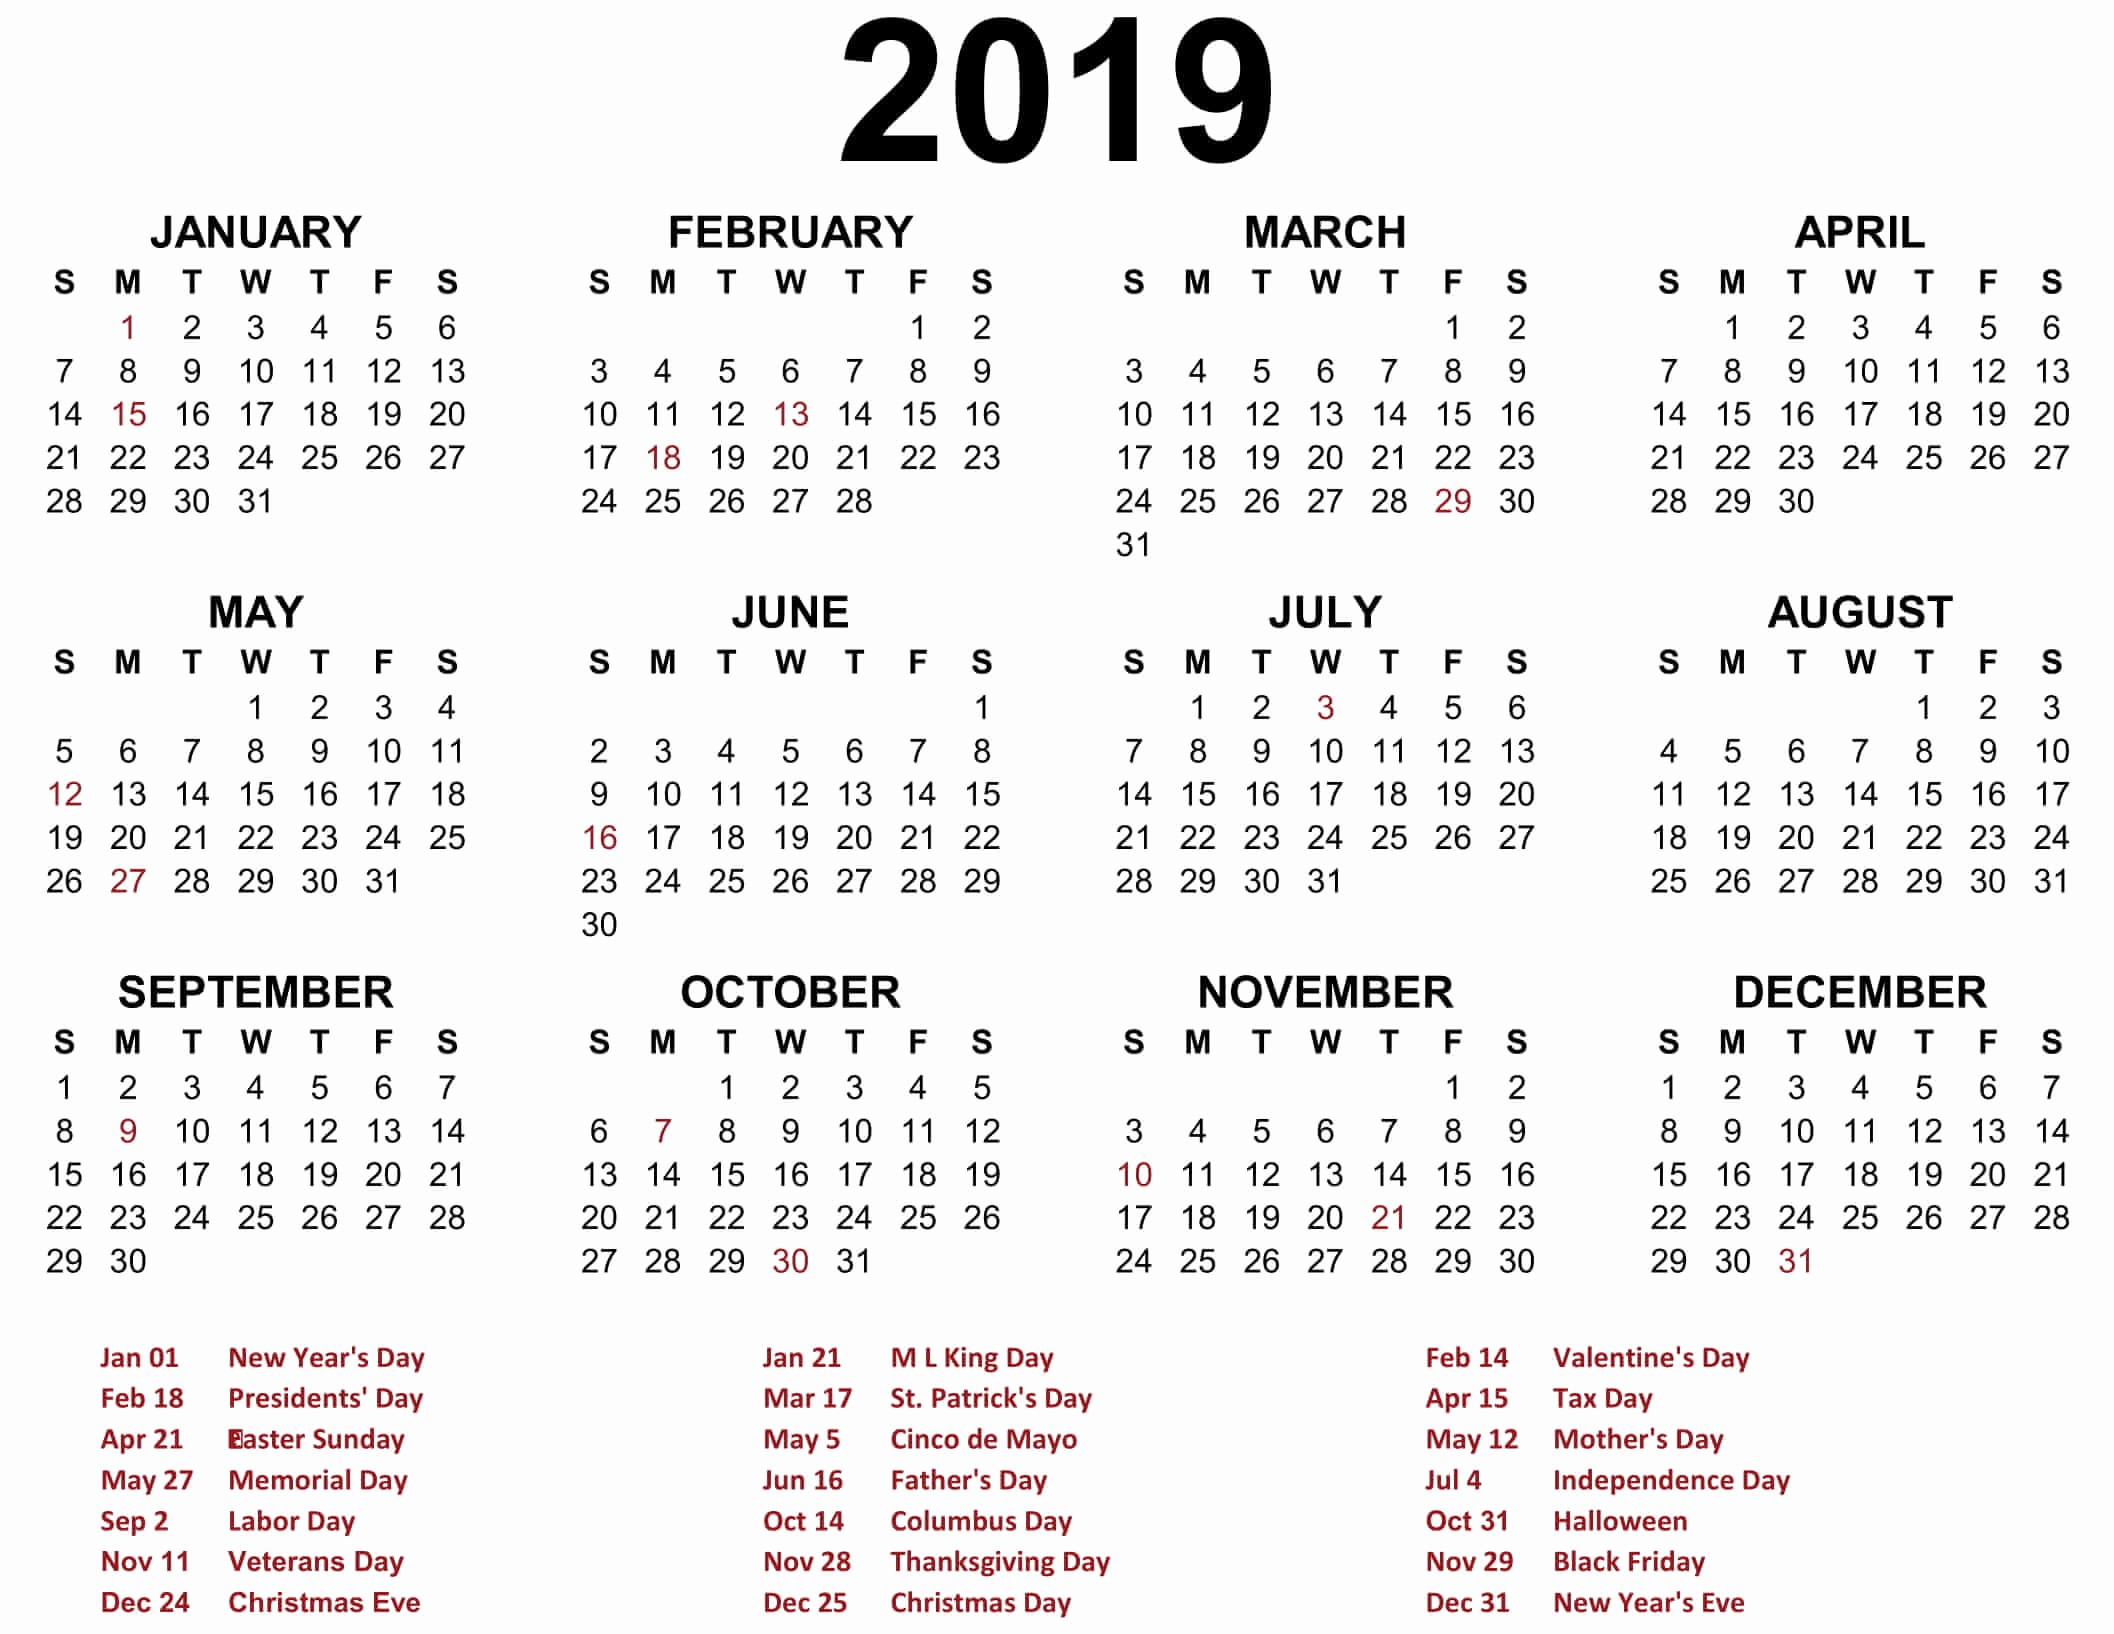 Free Printable 2019 Yearly Calendar New Free Yearly Calendar 2019 Printable Blank Templates